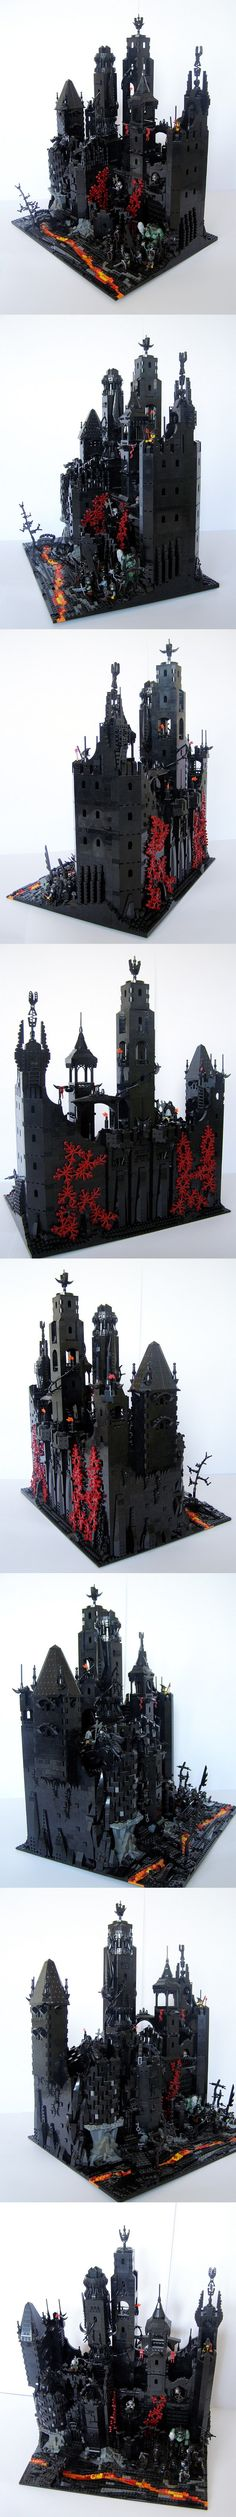 DARK CASTLE... the creator should be damn proud of this masterpiece.